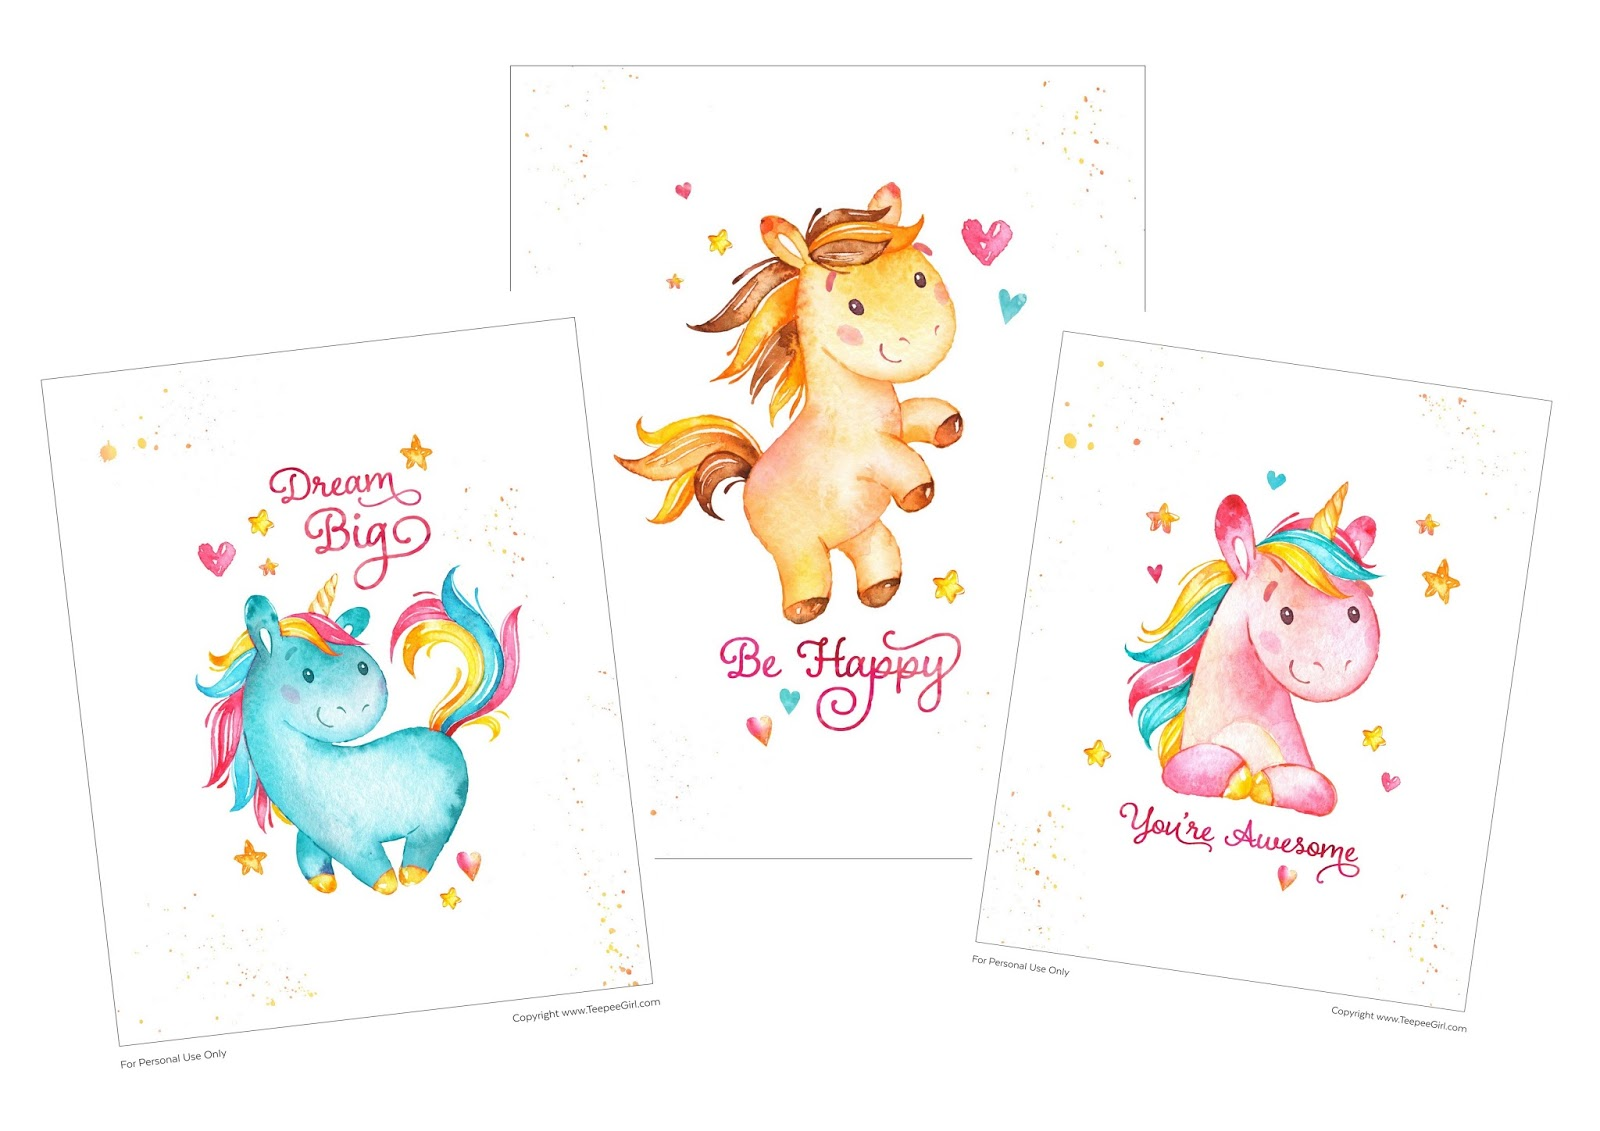 graphic about Free Printable Unicorn Pictures named Free of charge Printable Unicorn Posters. - Oh My Fiesta! inside english